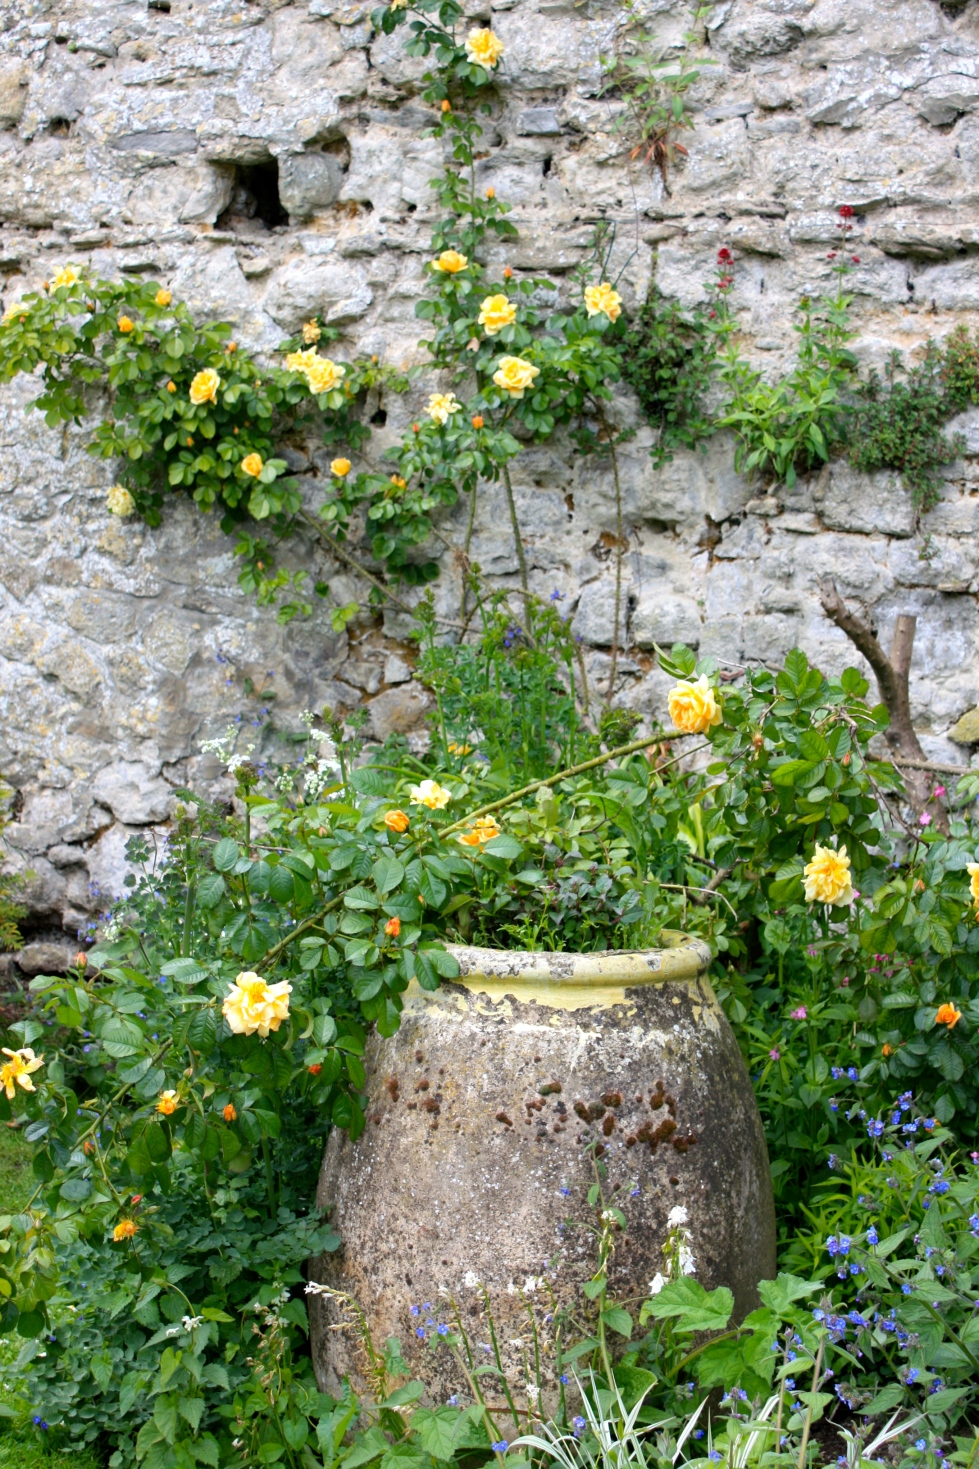 Urn and roses, Saltwood Castle, May 2014